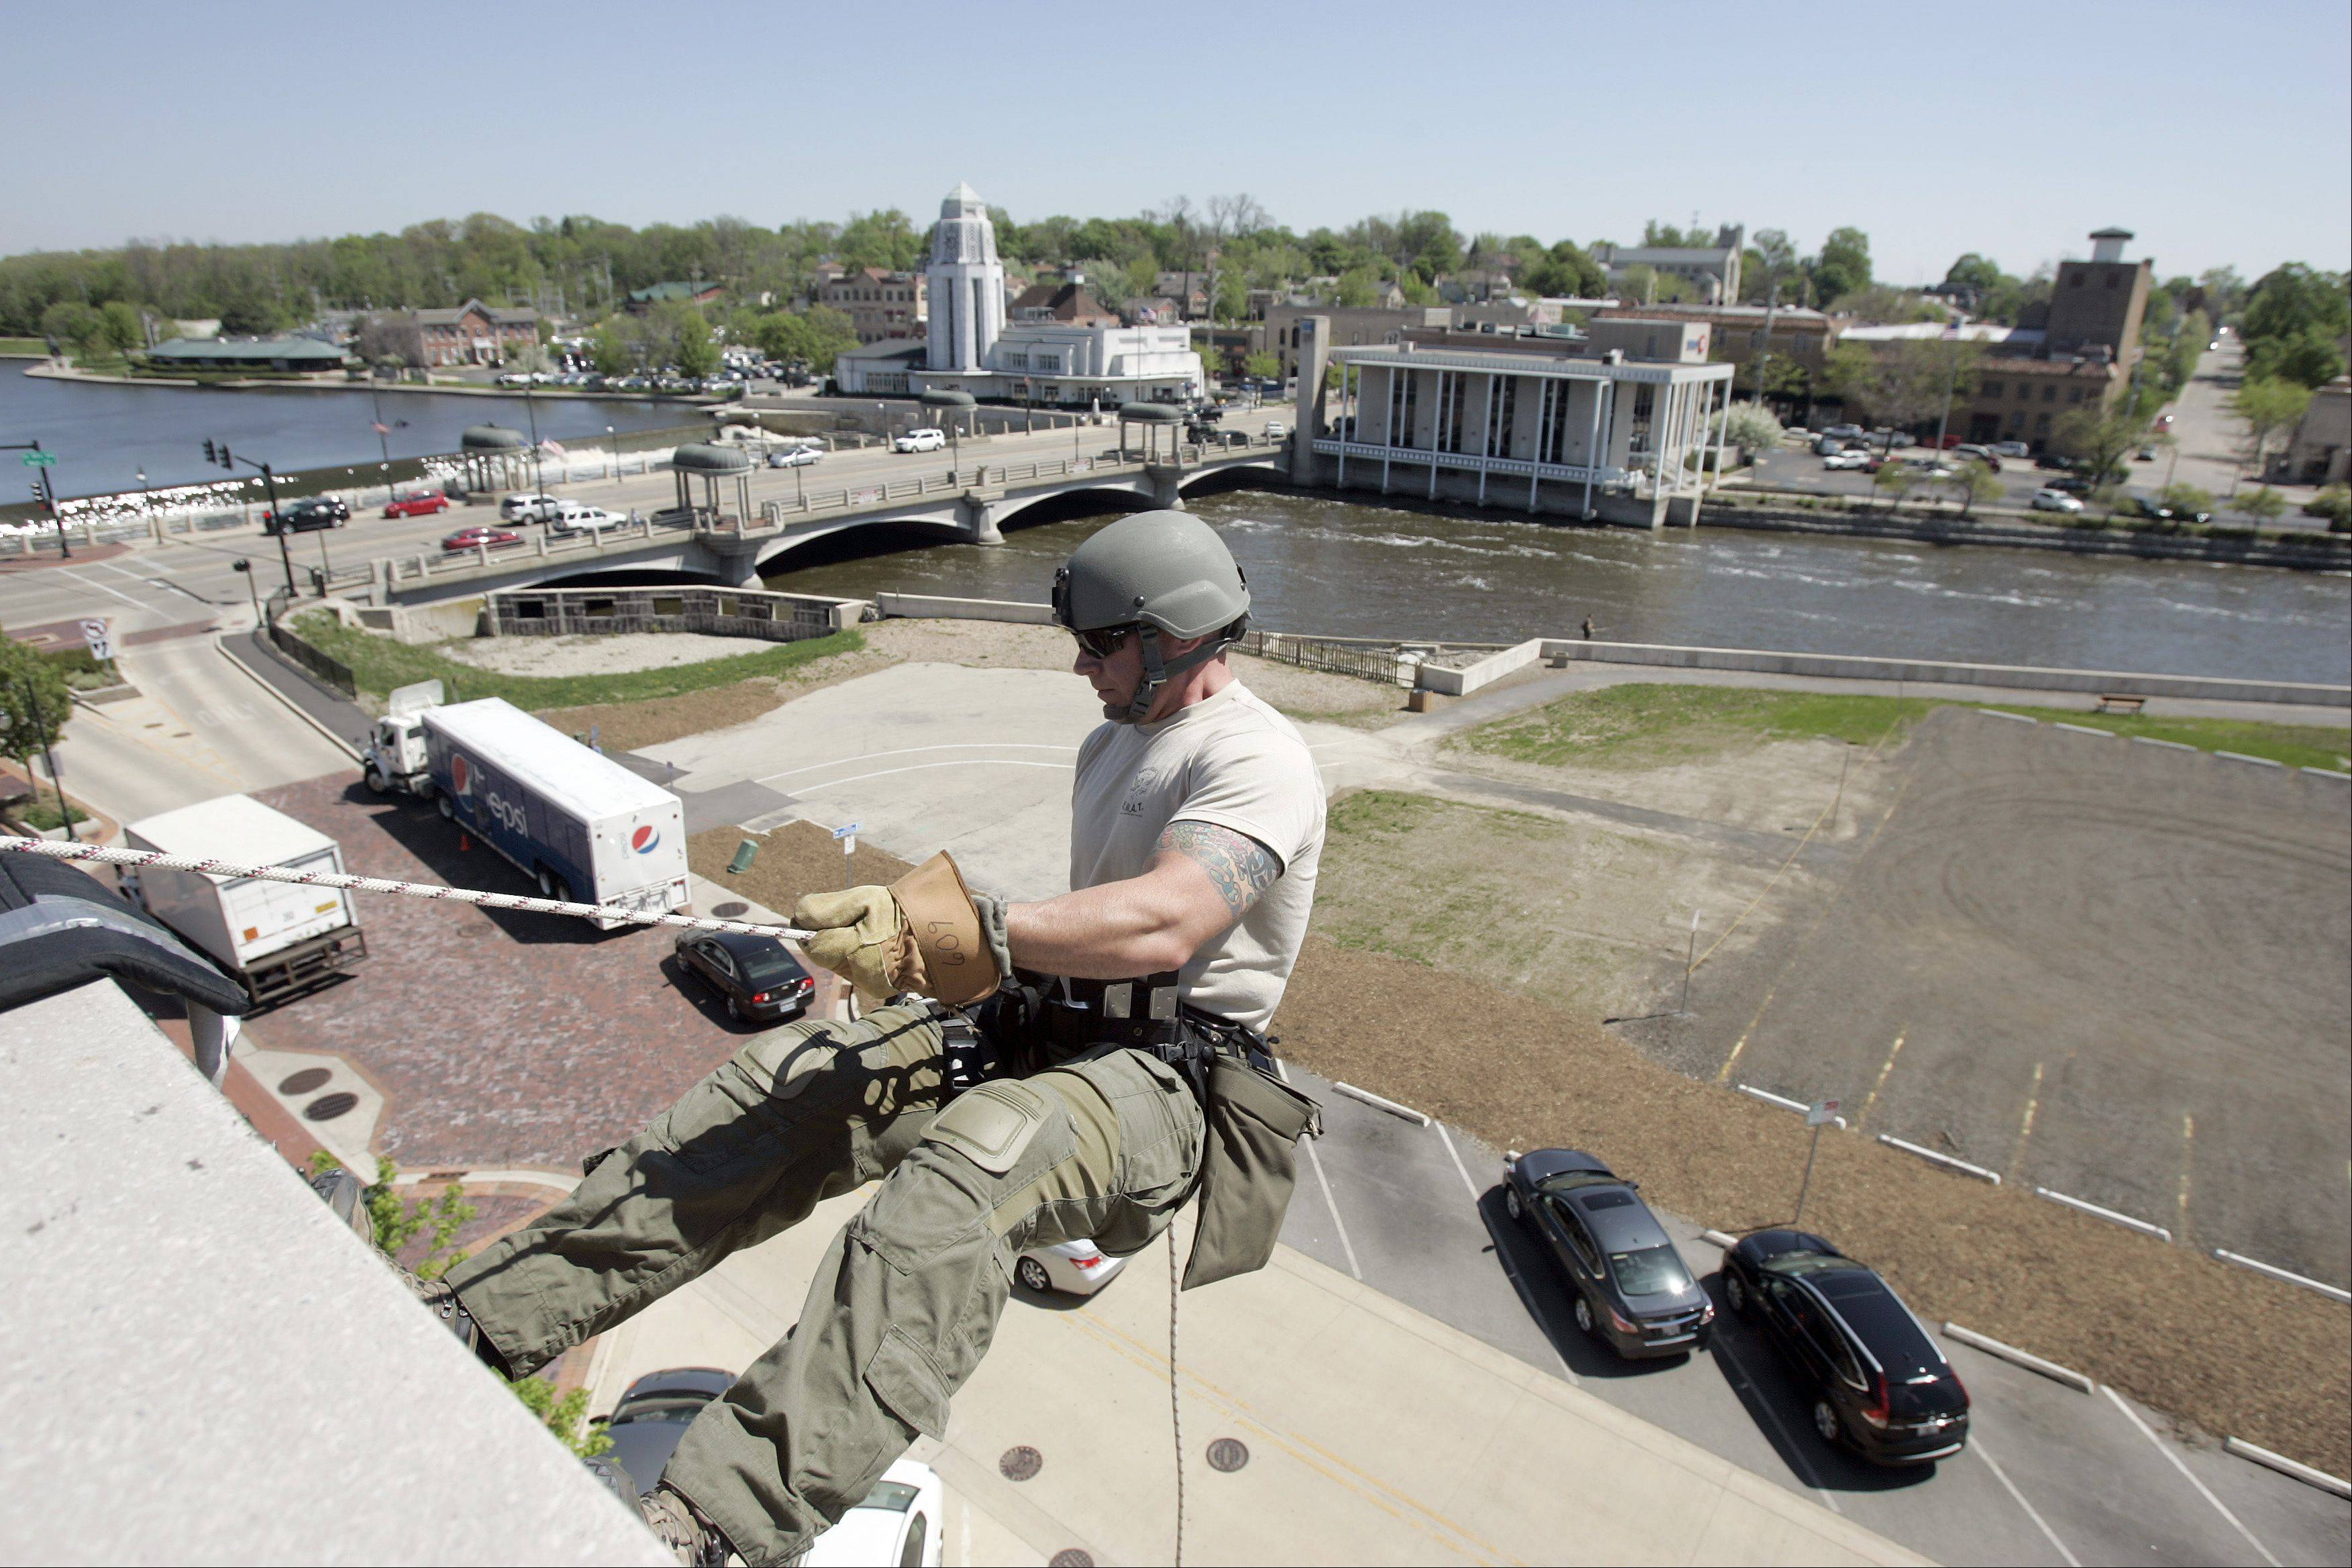 With the Fox River for a backdrop, Kane County Sheriff's Deputy and SWAT team member Chris Peeler takes a giant first step as he launches himself downward. The Kane County Swat Team was repelling from the parking garage in St. Charles Tuesday as they trained.